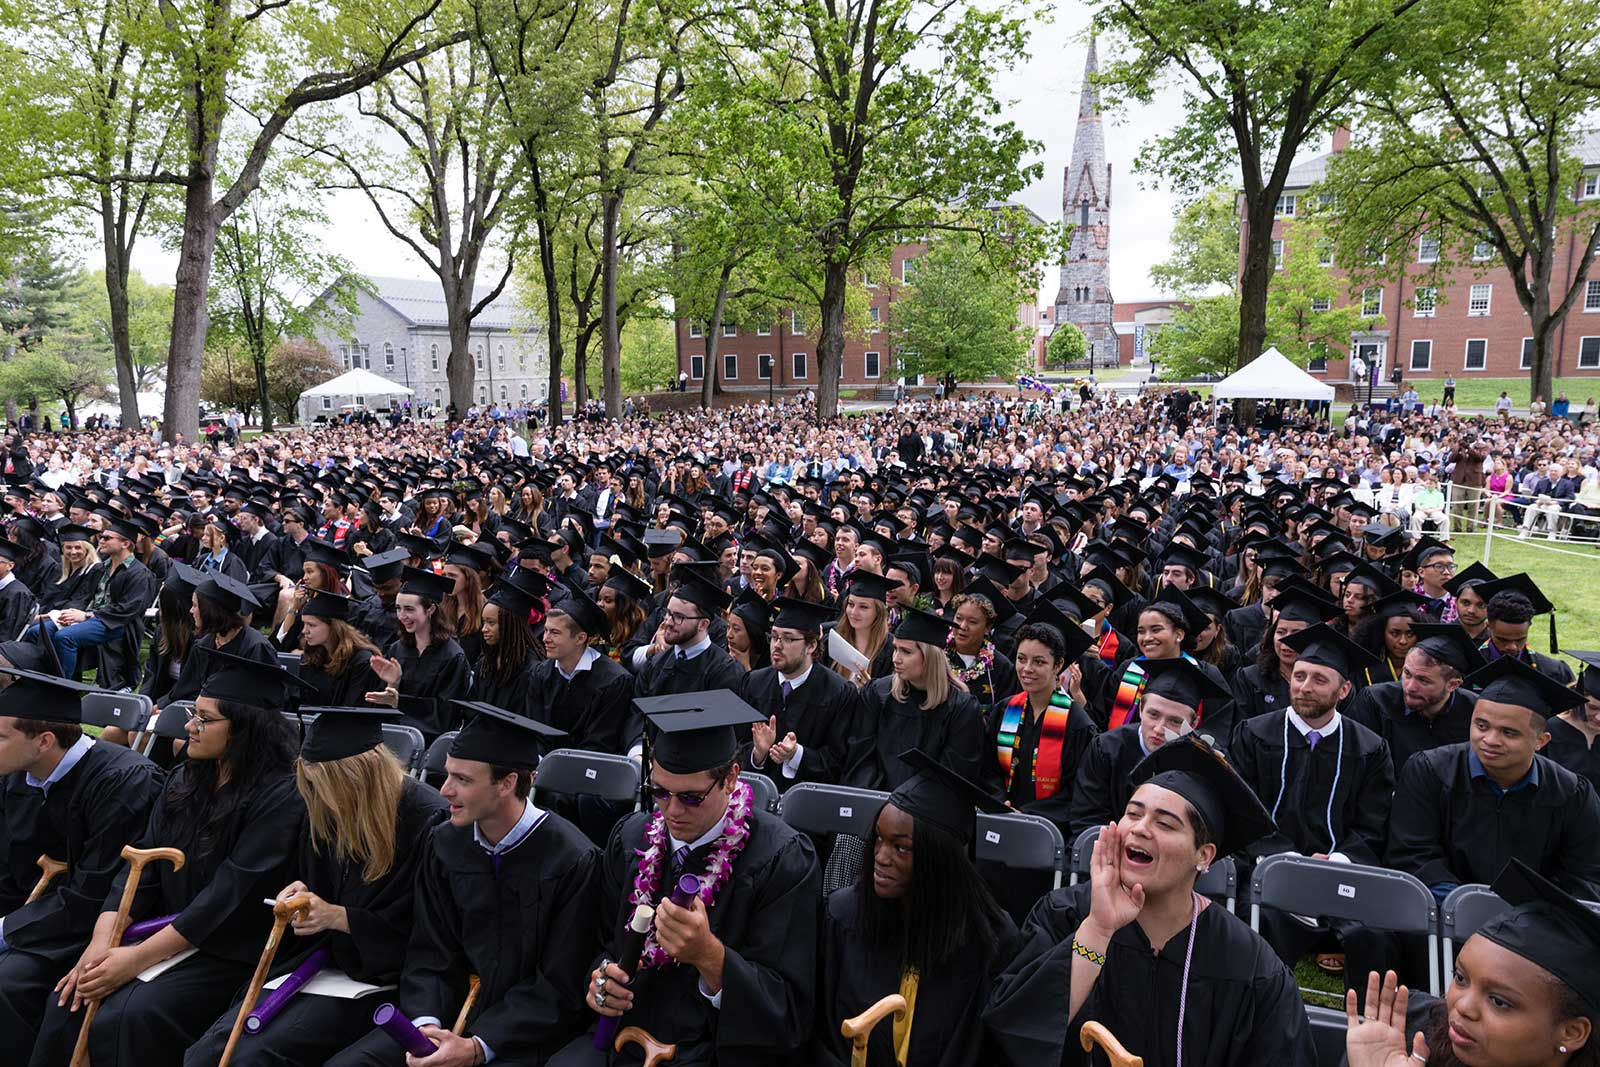 The senior class seated during the Commencement ceremony